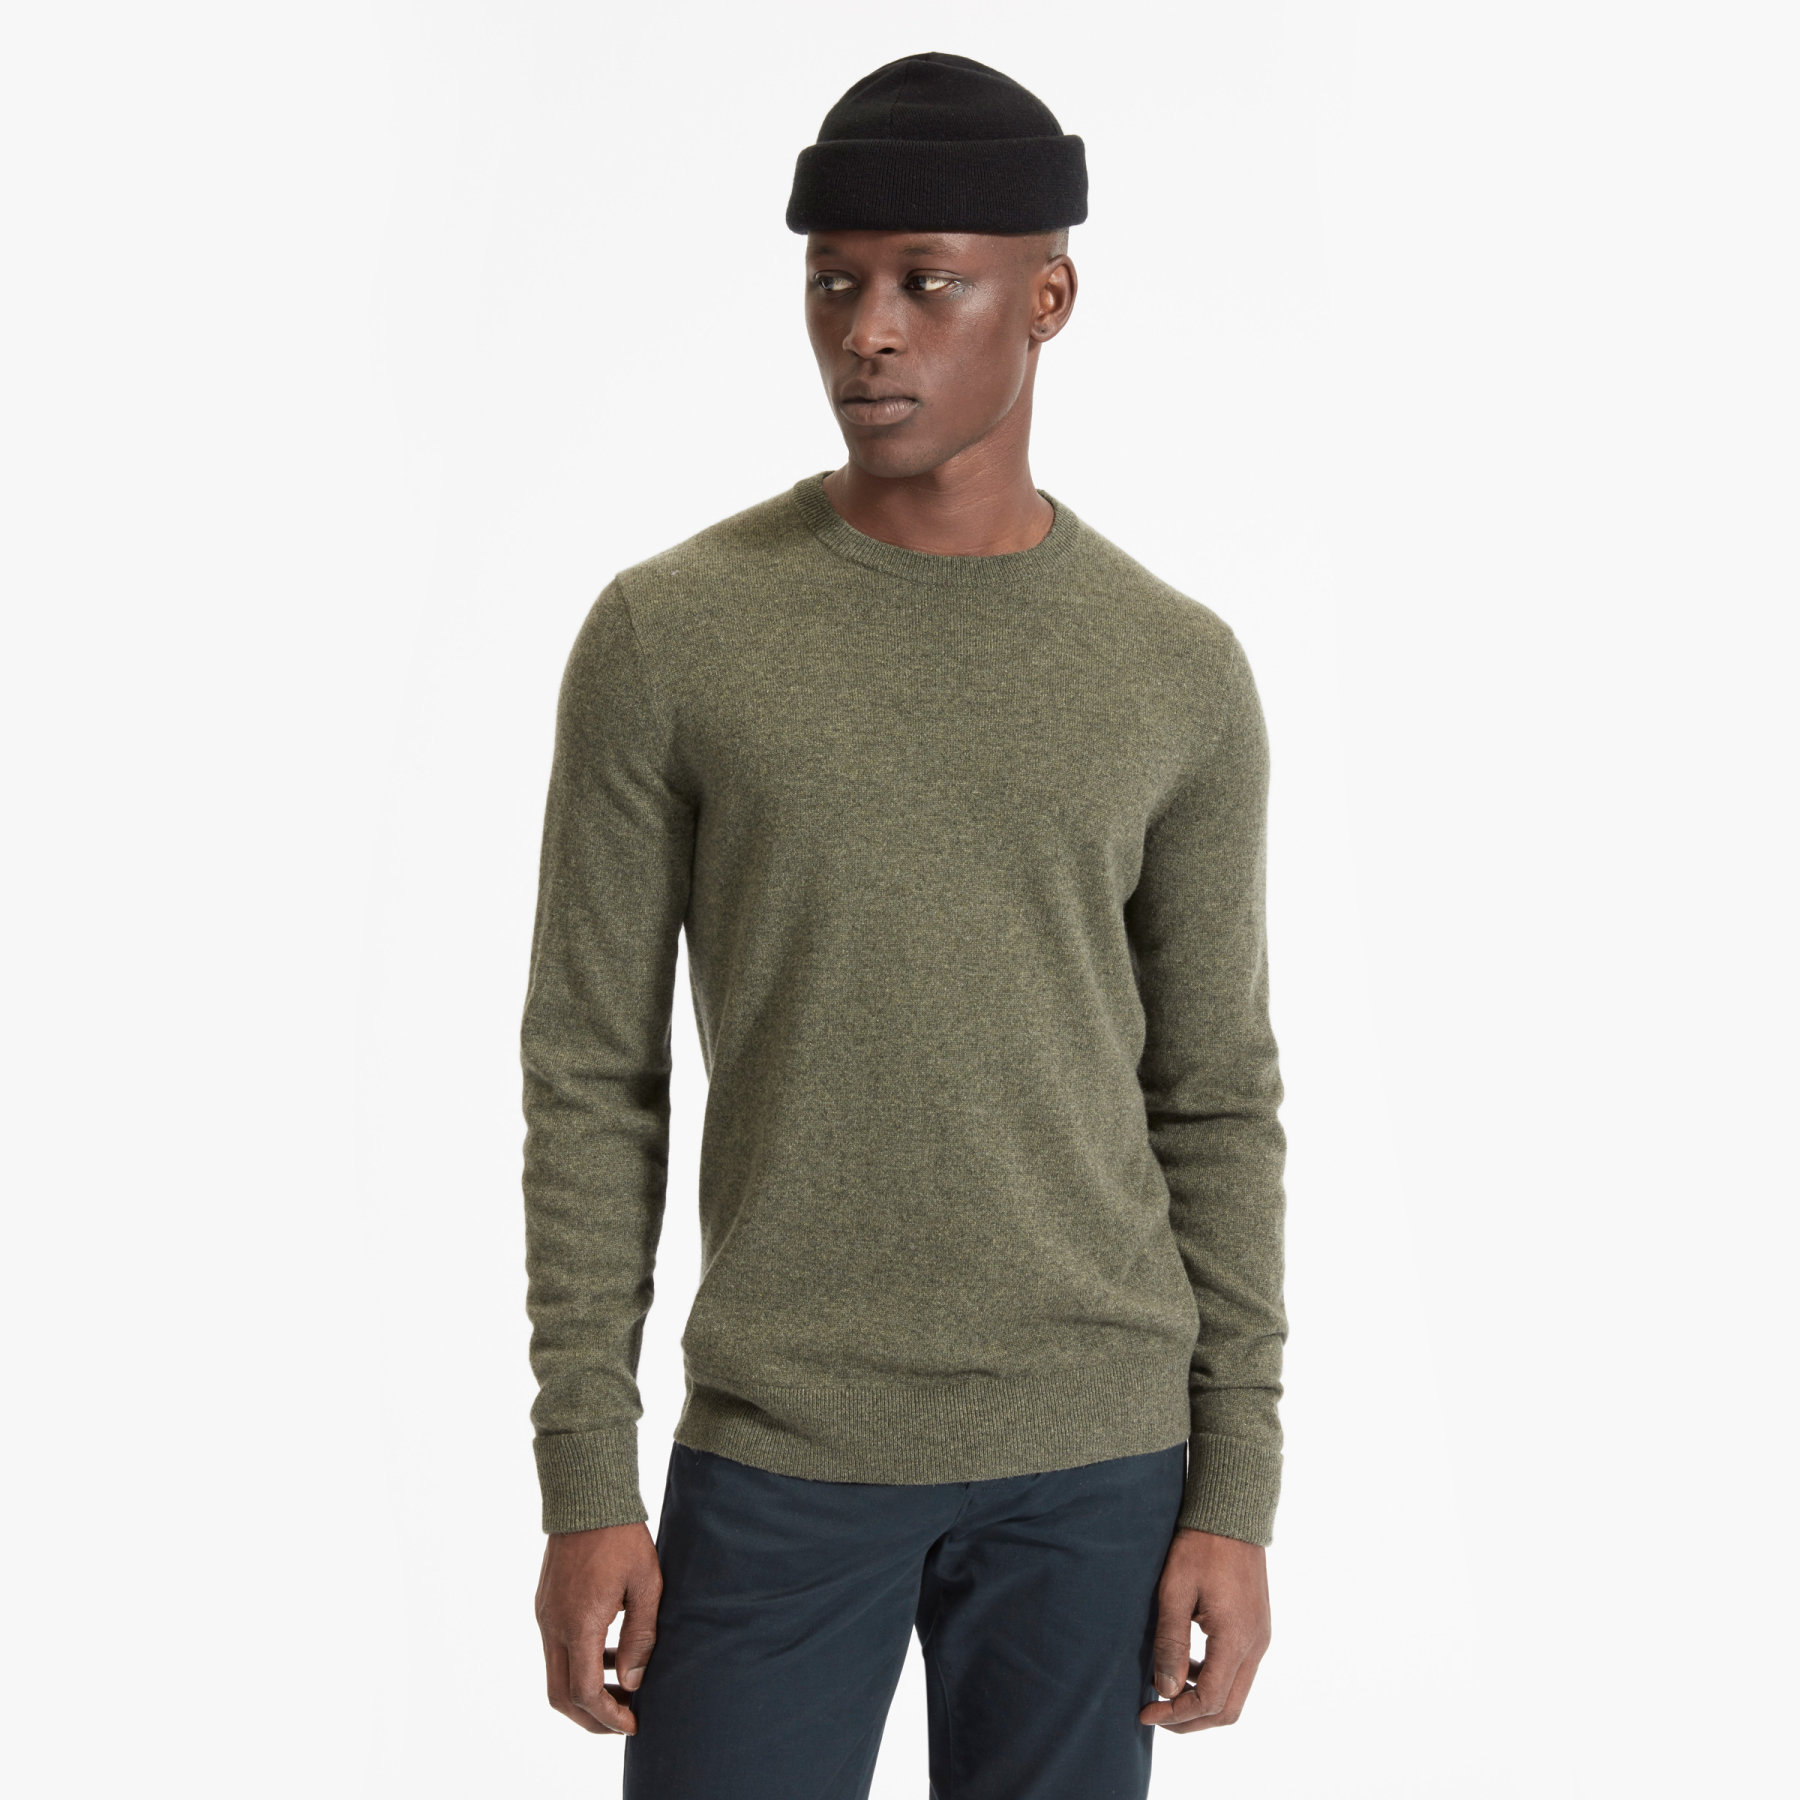 everlane review 6 best staples mens cashmere crew